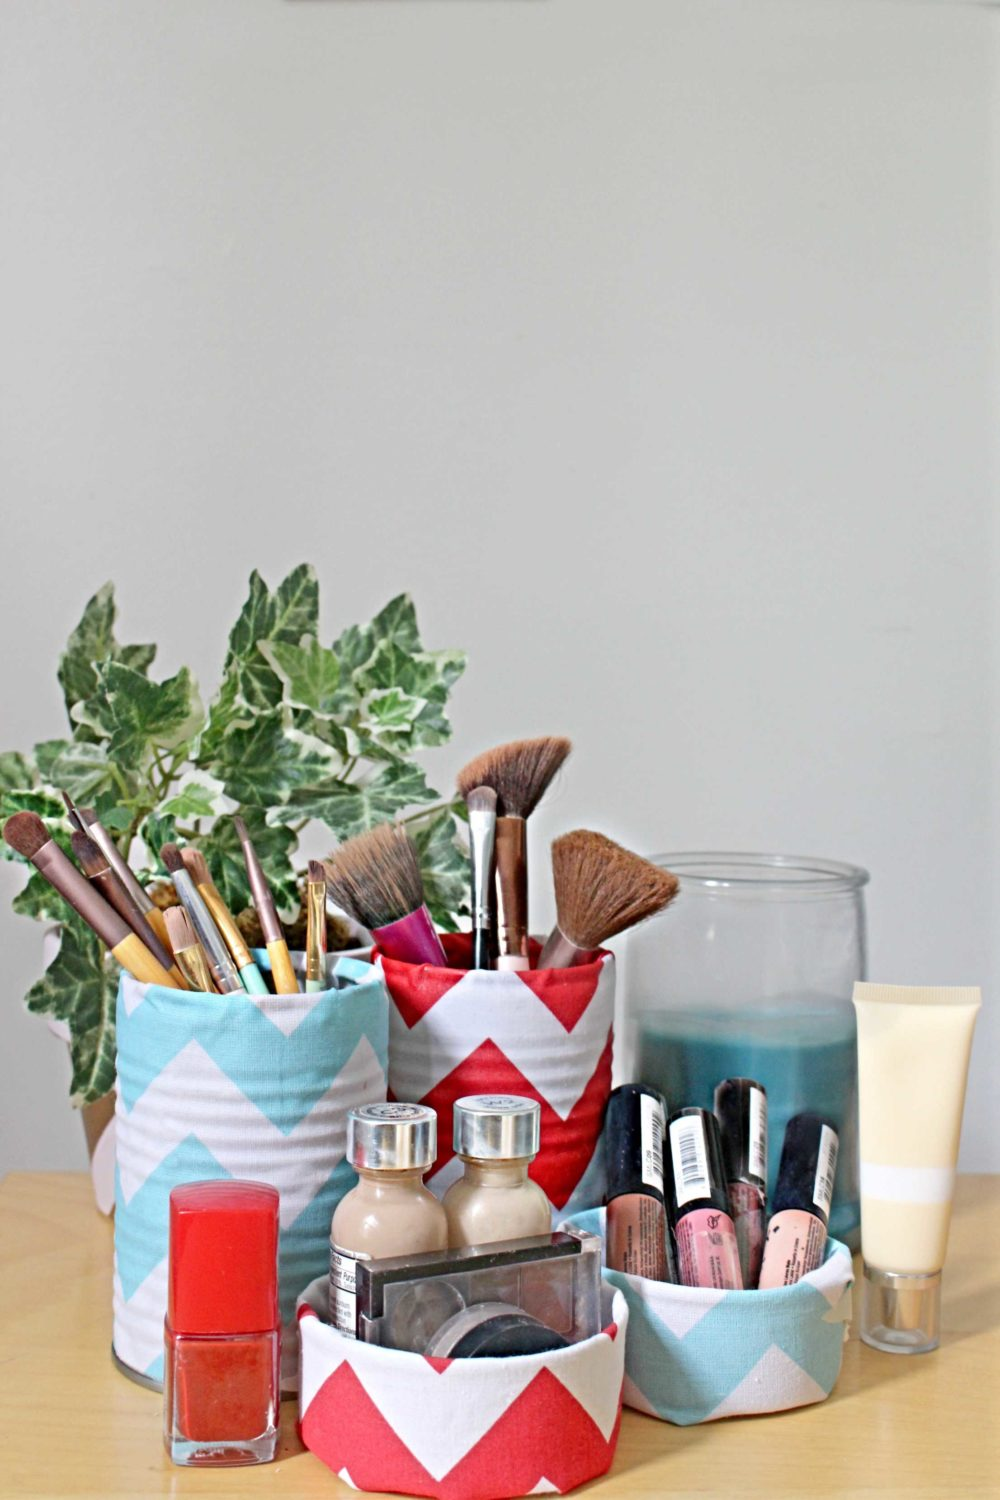 makeup brush container ideas made with tin cans, fabric and modge podge